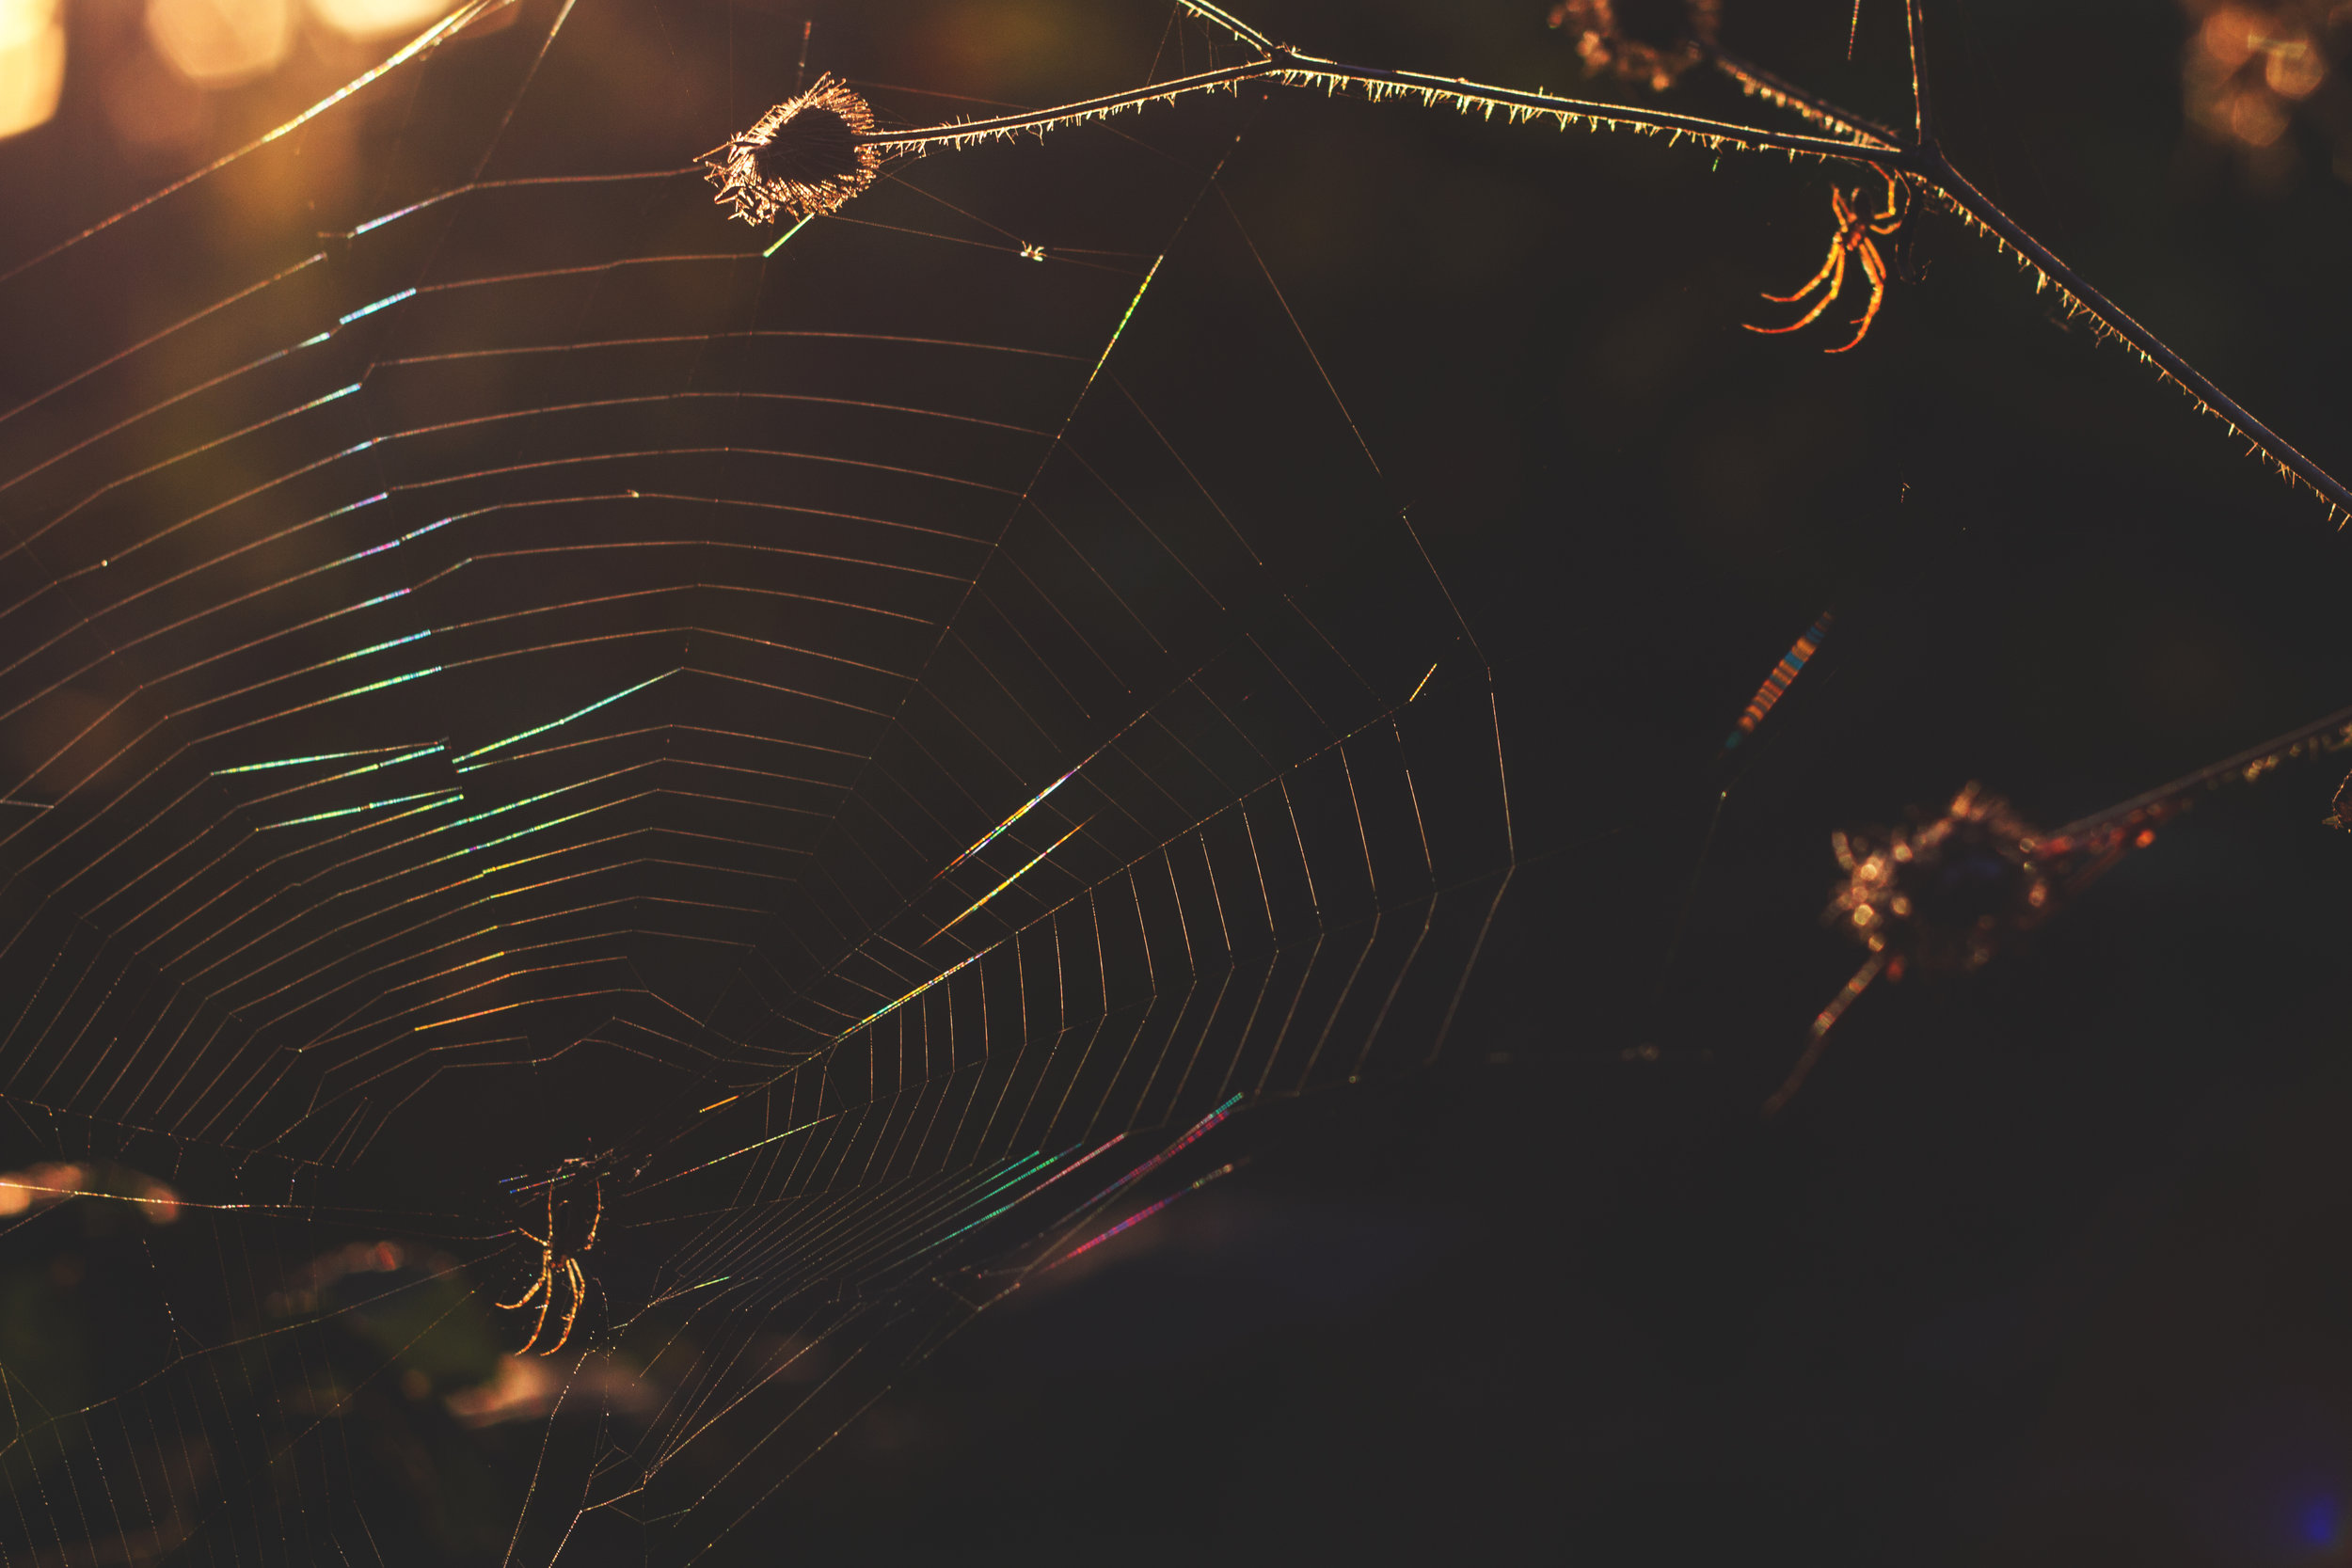 4 titlow park spider sunset 5 oct 2013.jpg